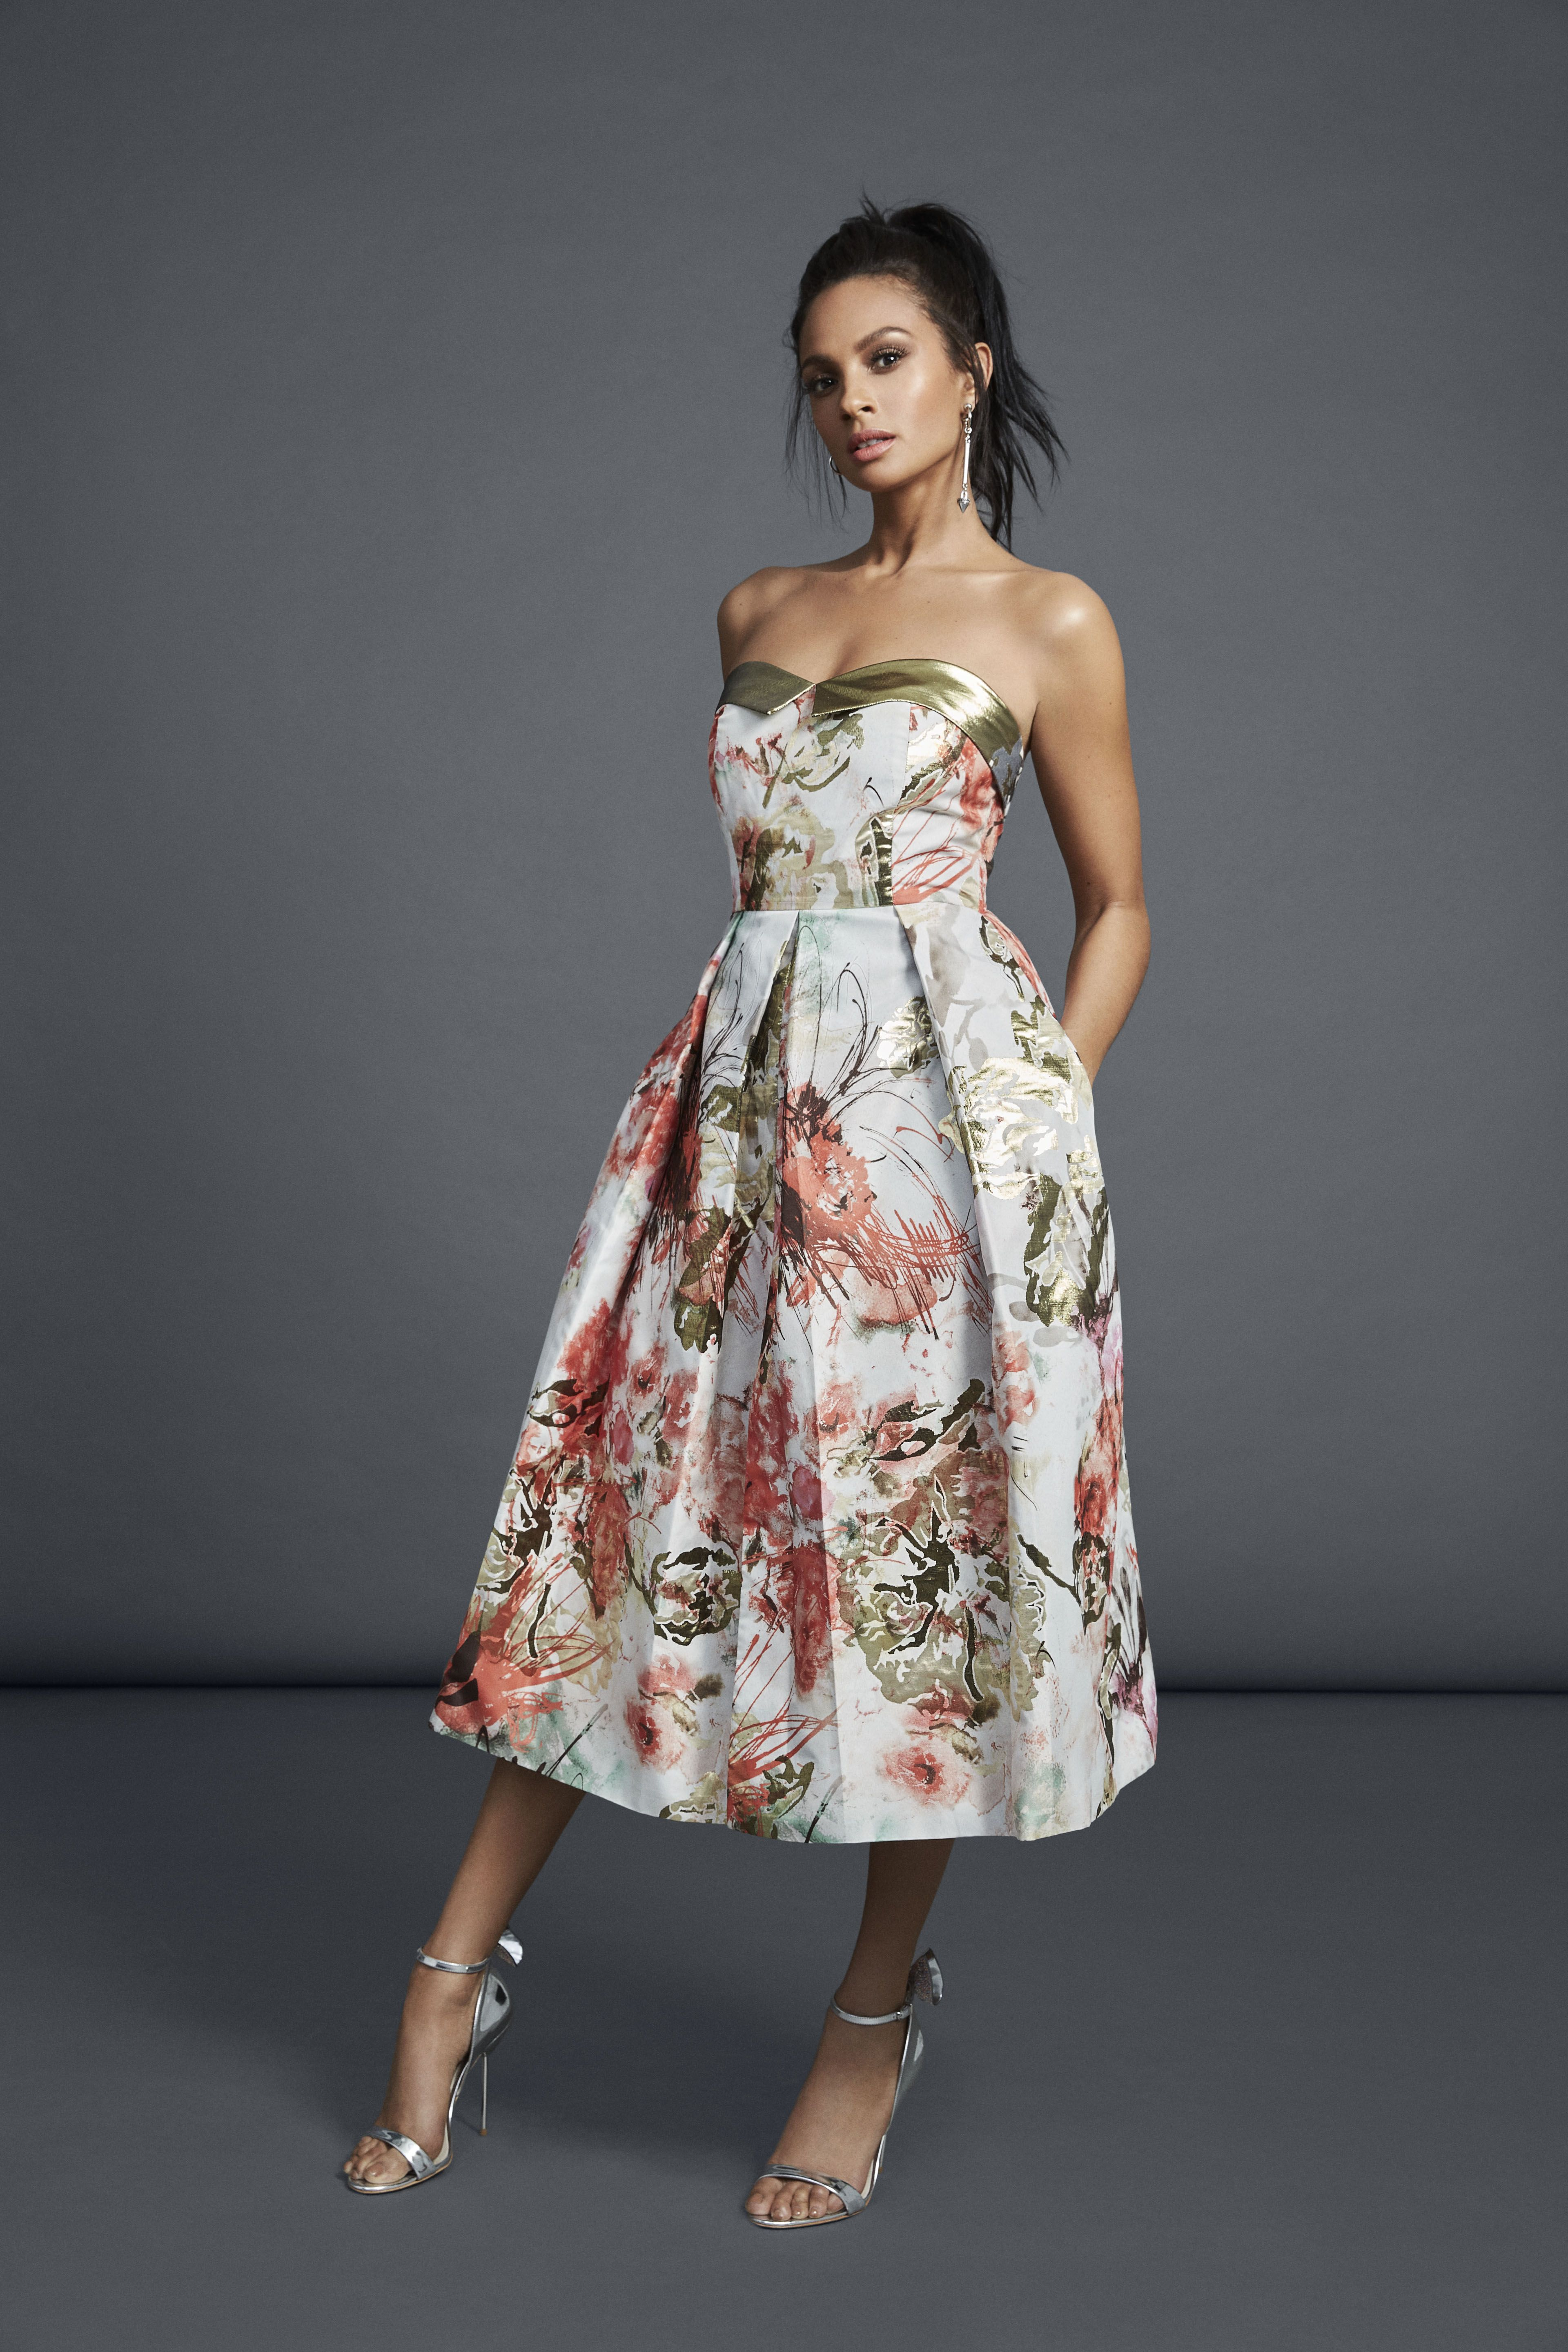 Alesha Dixon SS17 Collection Strapless Floral Midi Dress in Coral ...